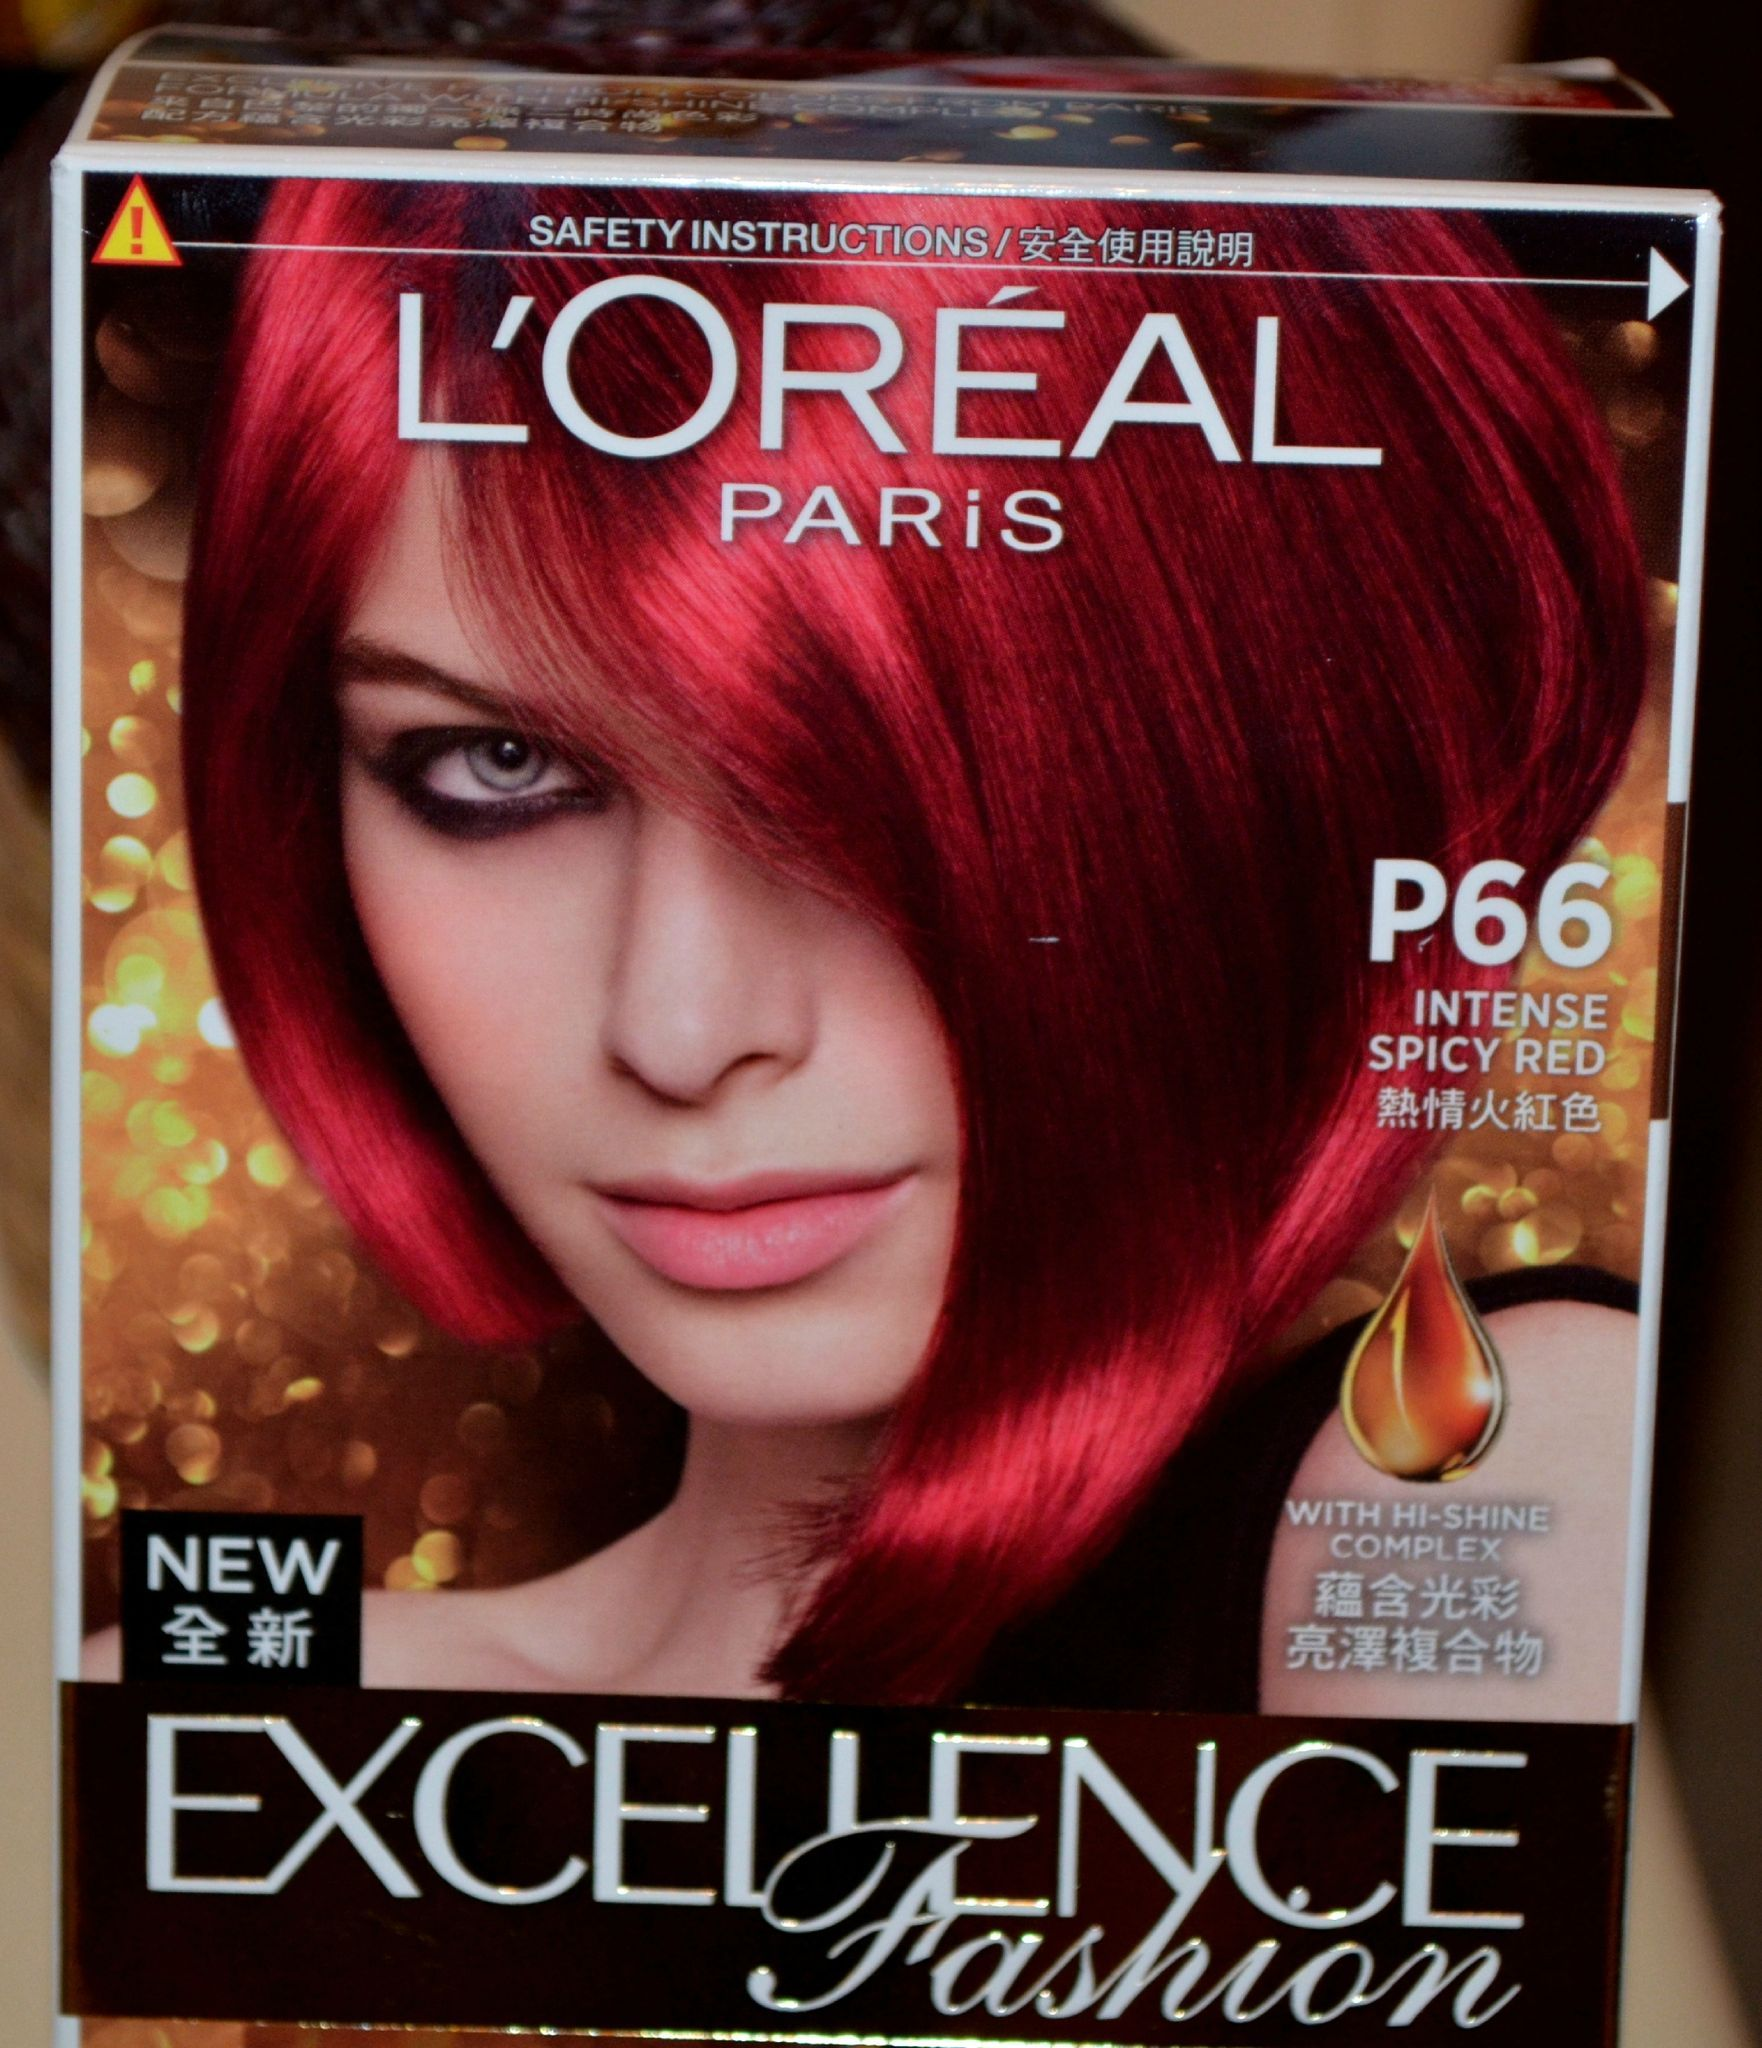 1000 images about couleur cheveux on pinterest christmas nail art bouncy curls and search - Coloration Cheveux L Oreal